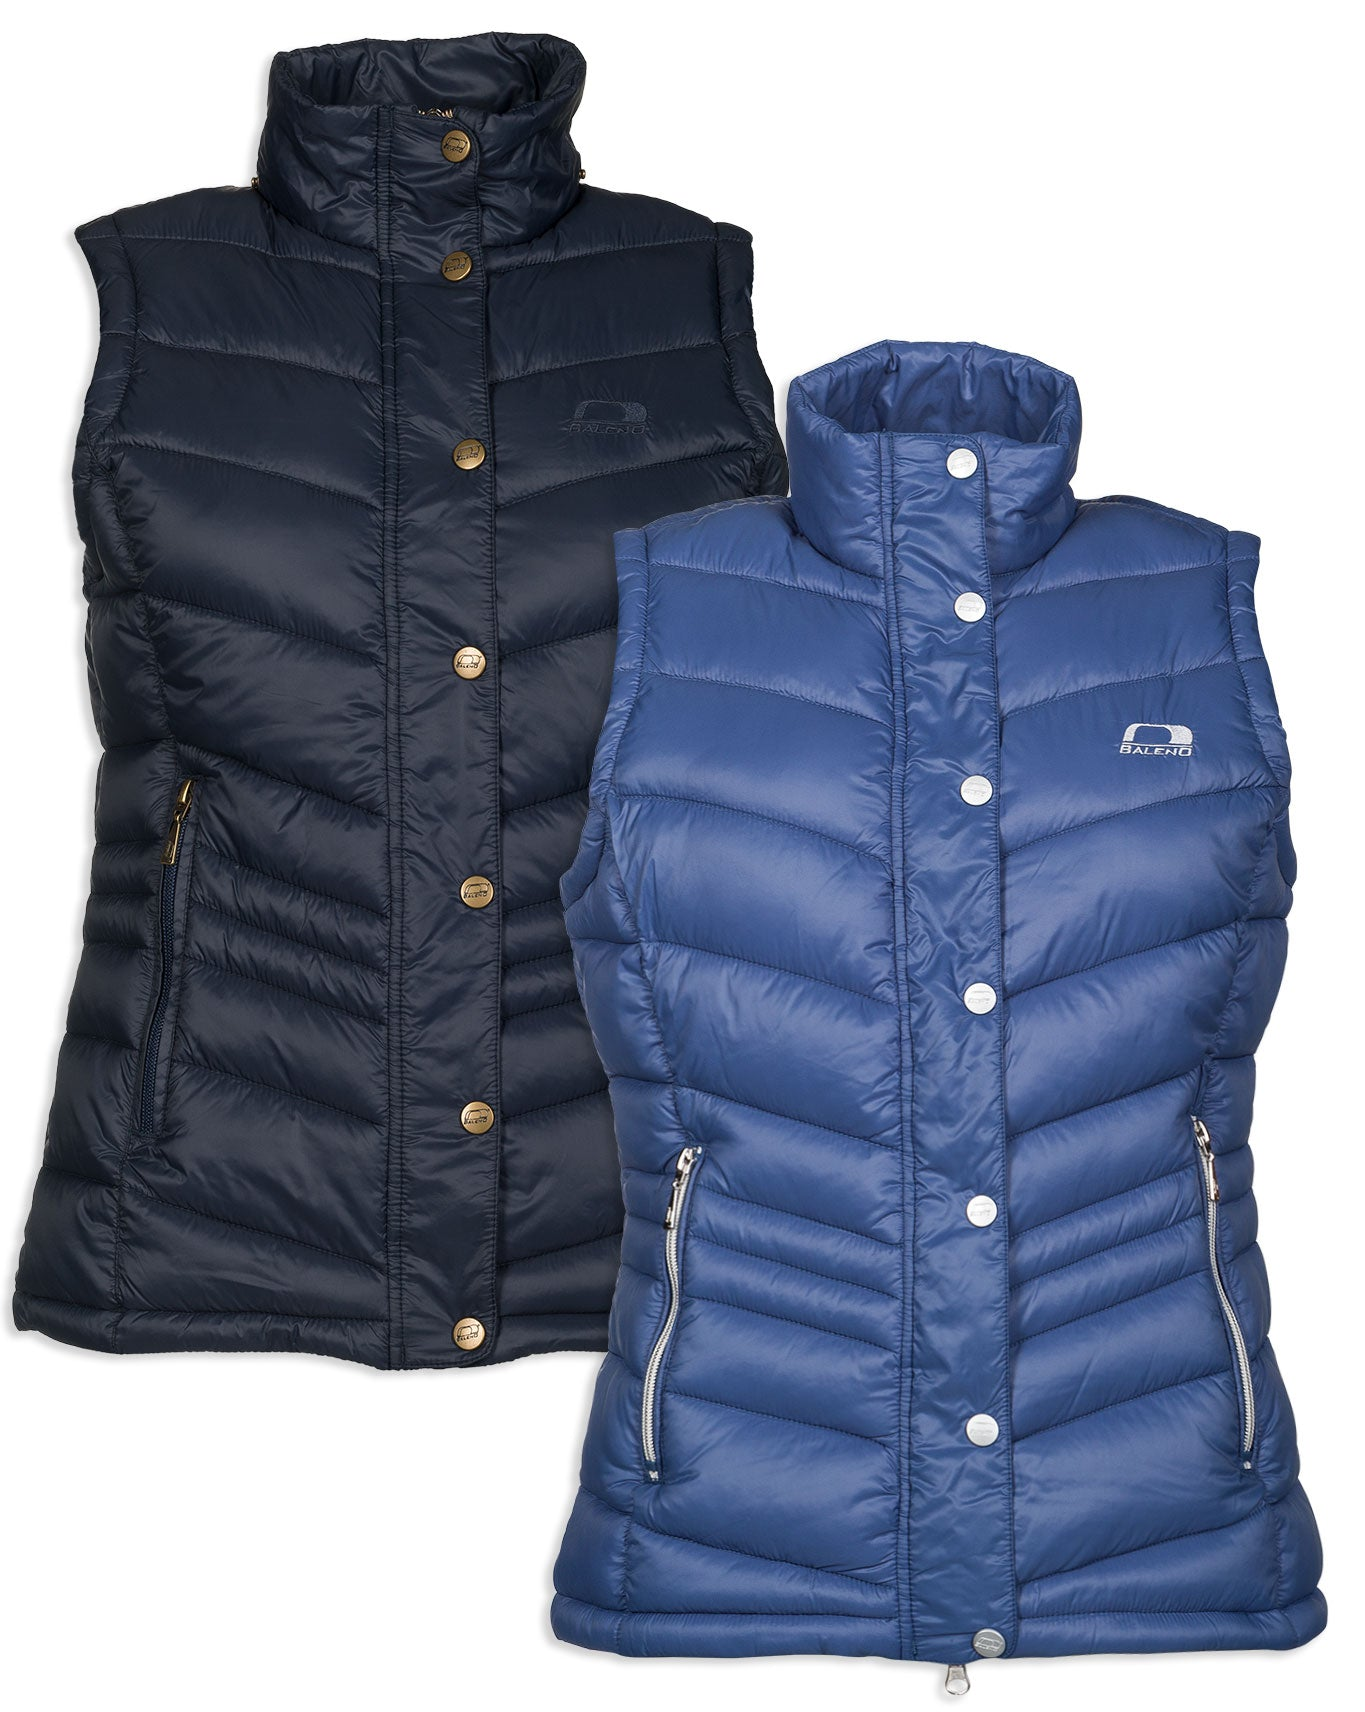 Baleno Astrid Quilted Gilet in blue and navy